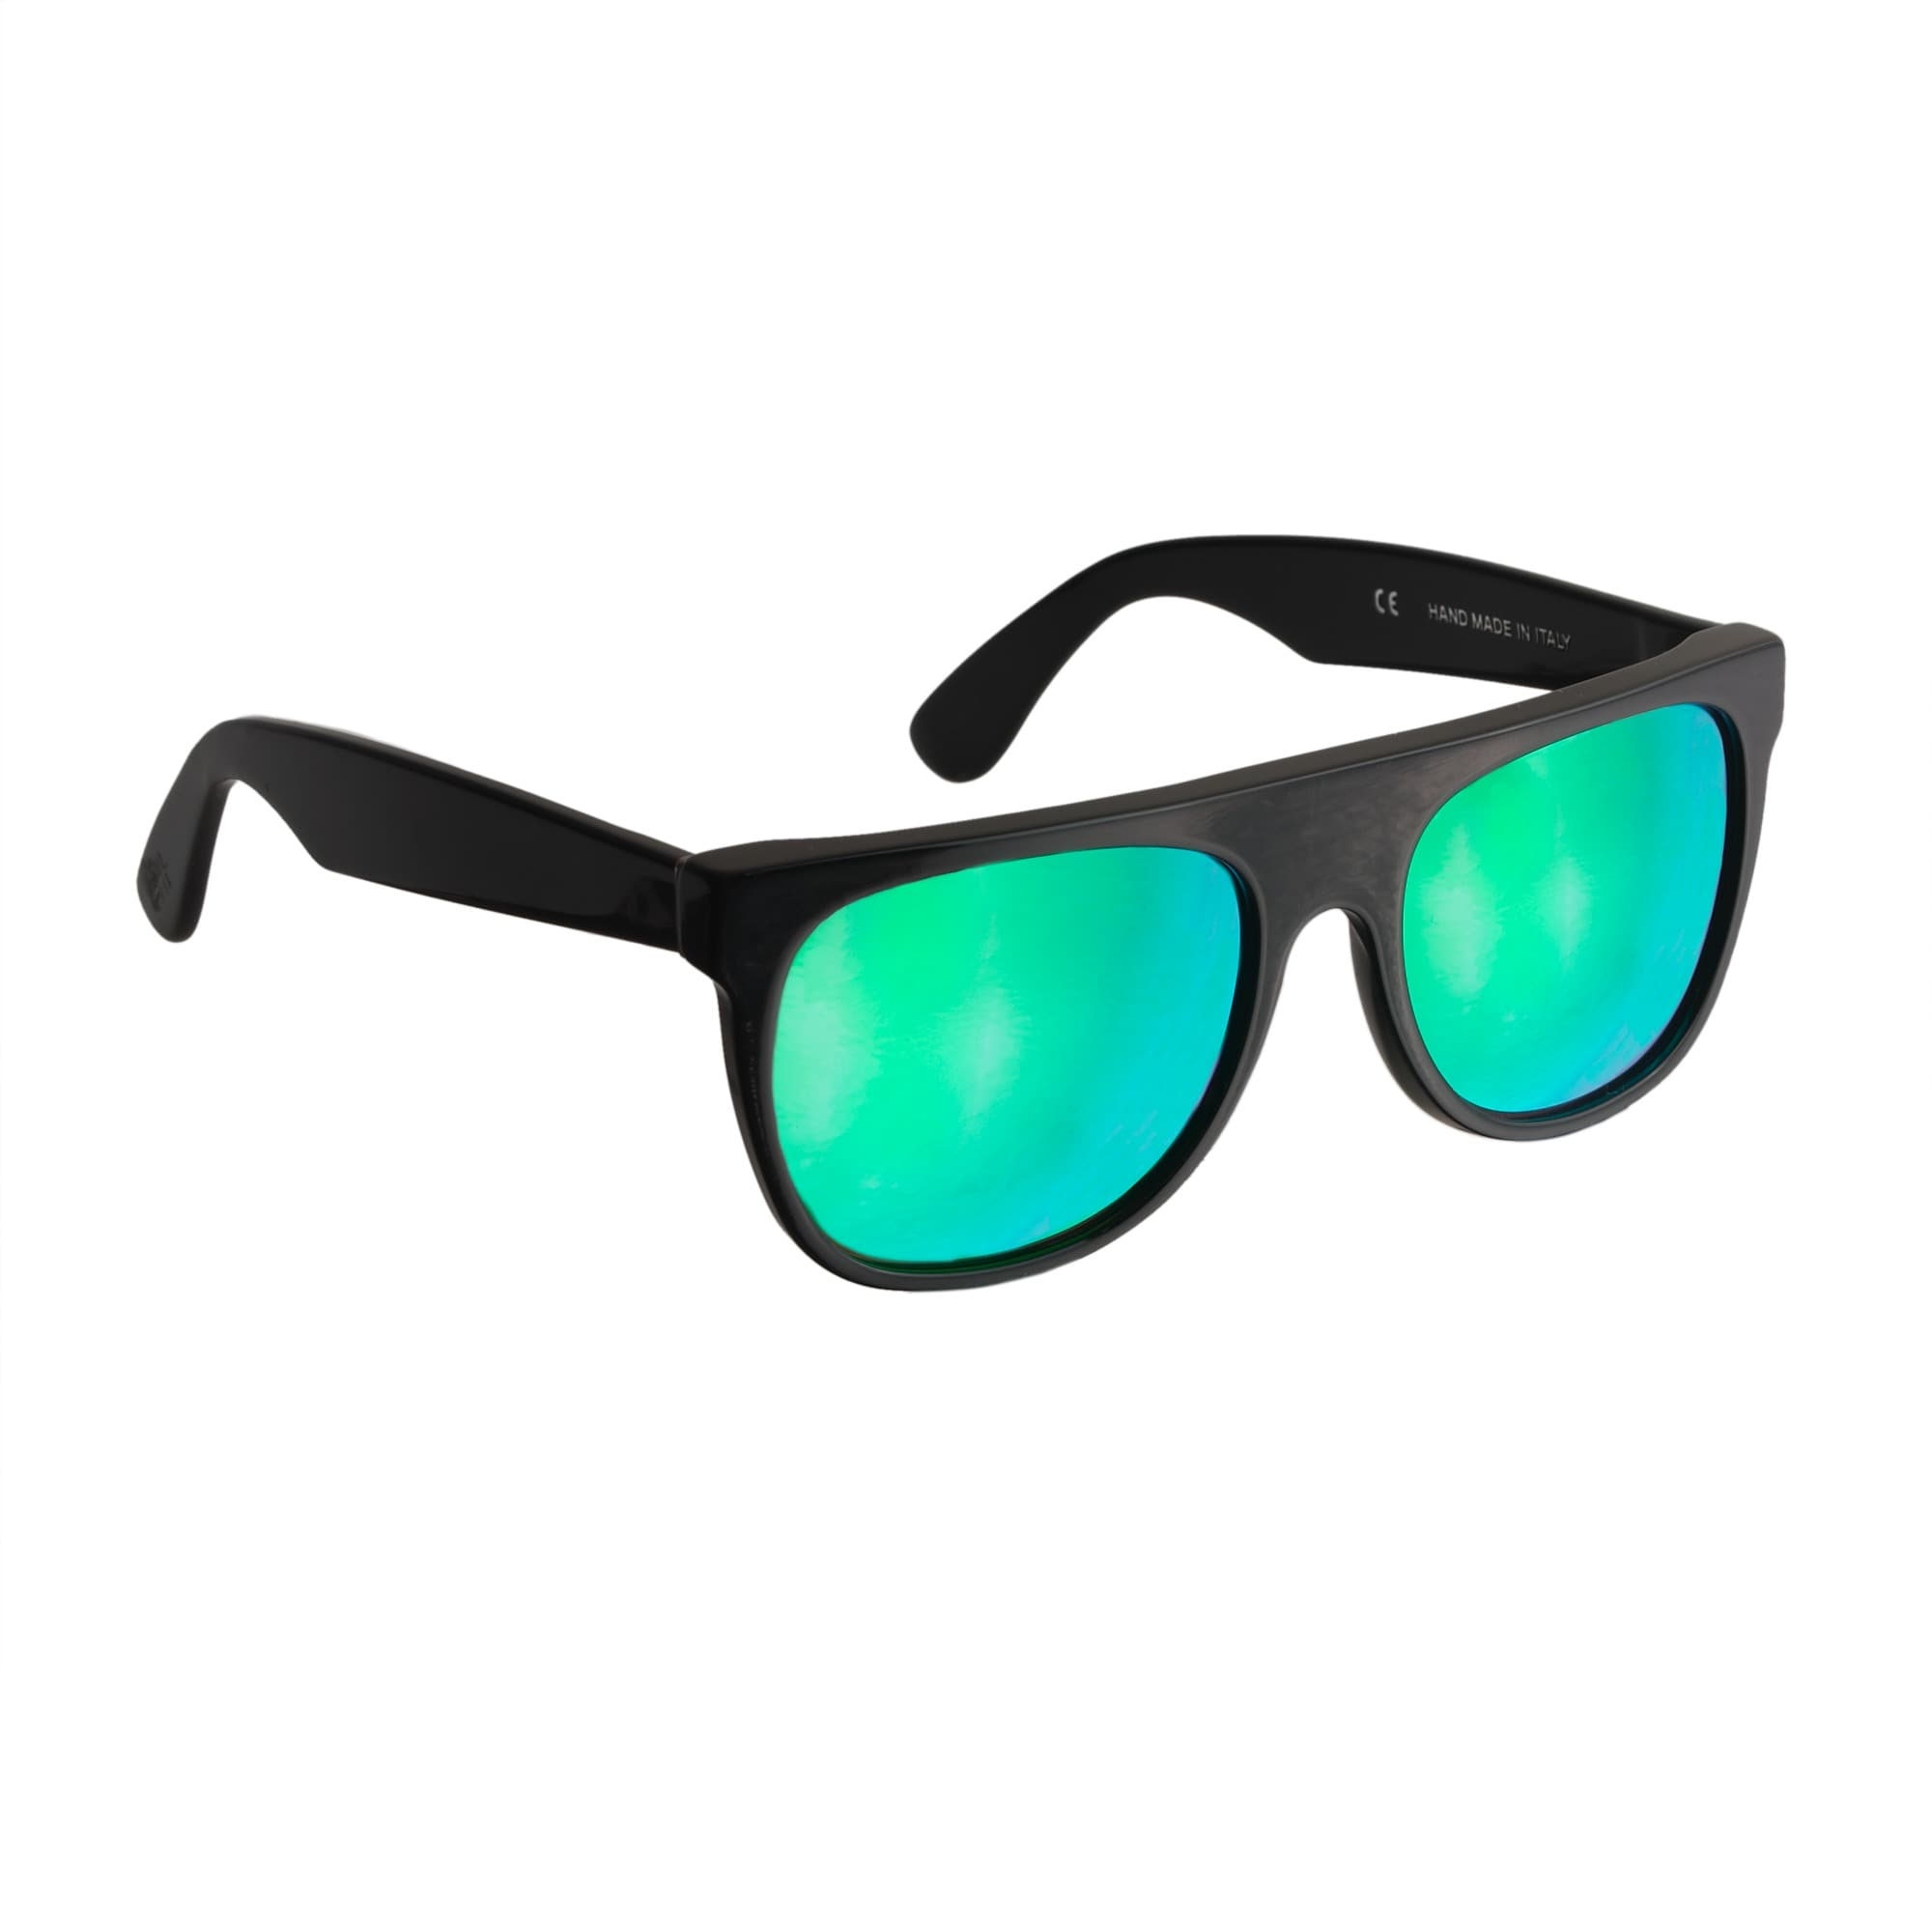 Image 2 for Super™ Mirrored Cove Flat Top Sunglasses